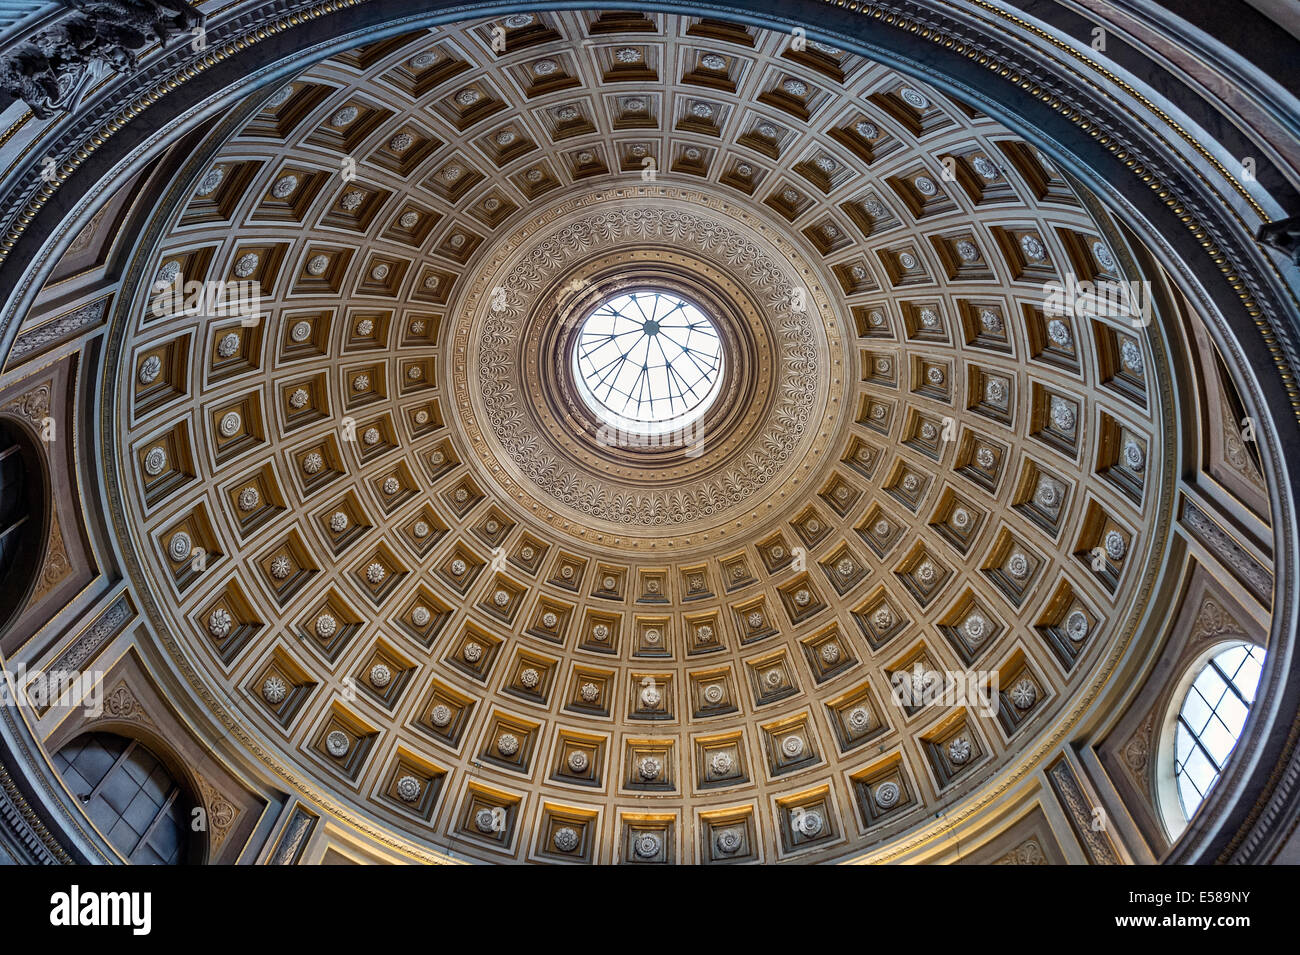 Coffered ceiling of the Sala Rotonda, Vatican Museums, Vatican City - Stock Image